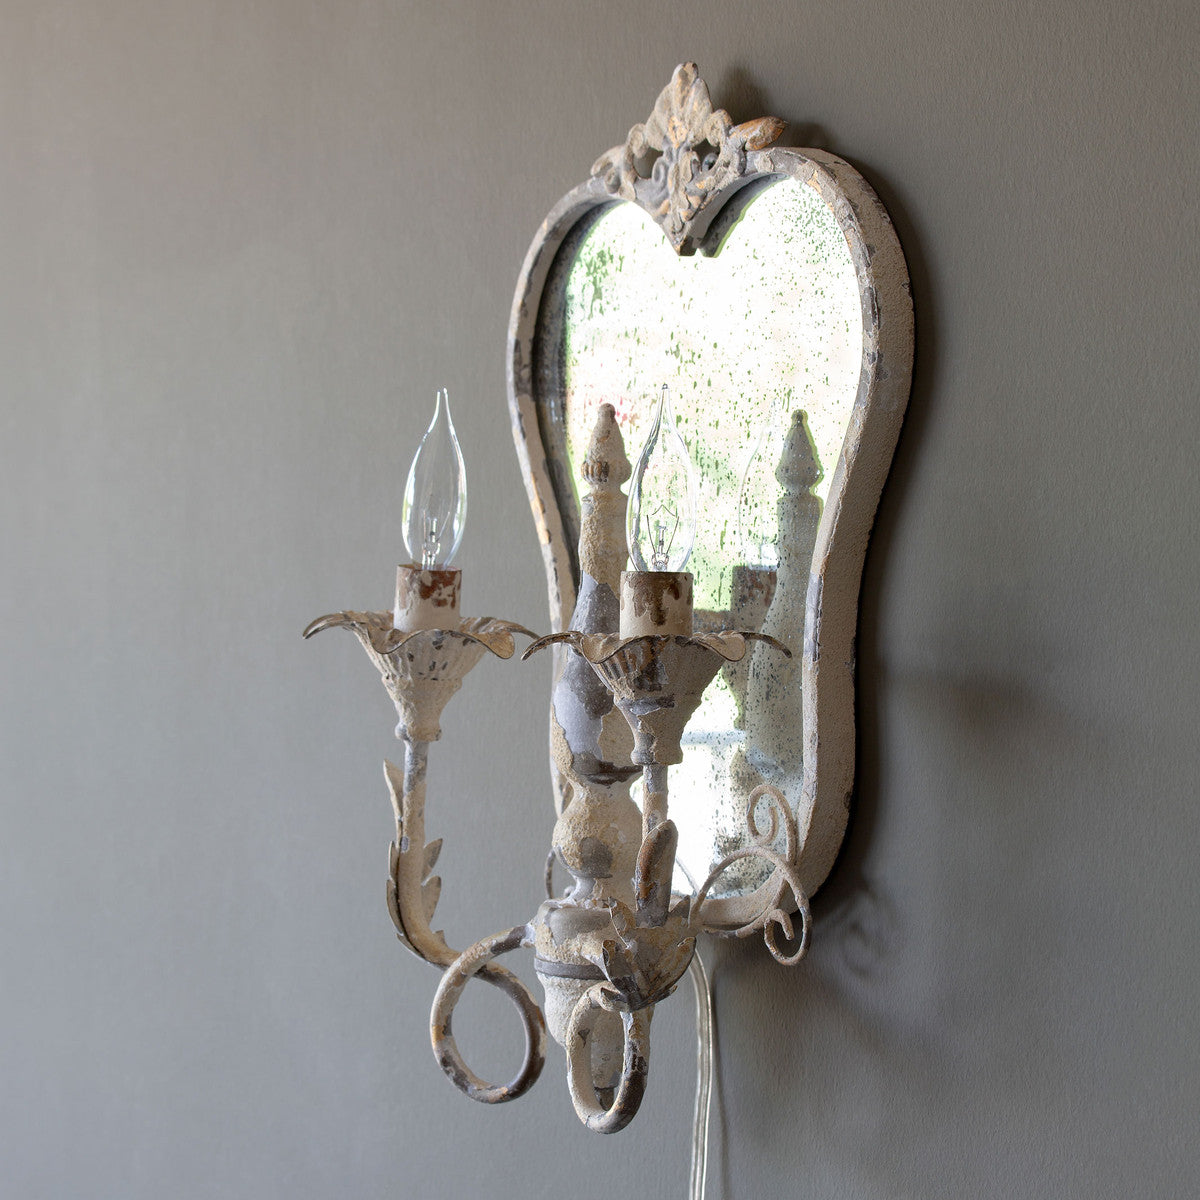 Lovecup Parlor Double Sconce, Set of 2 L759